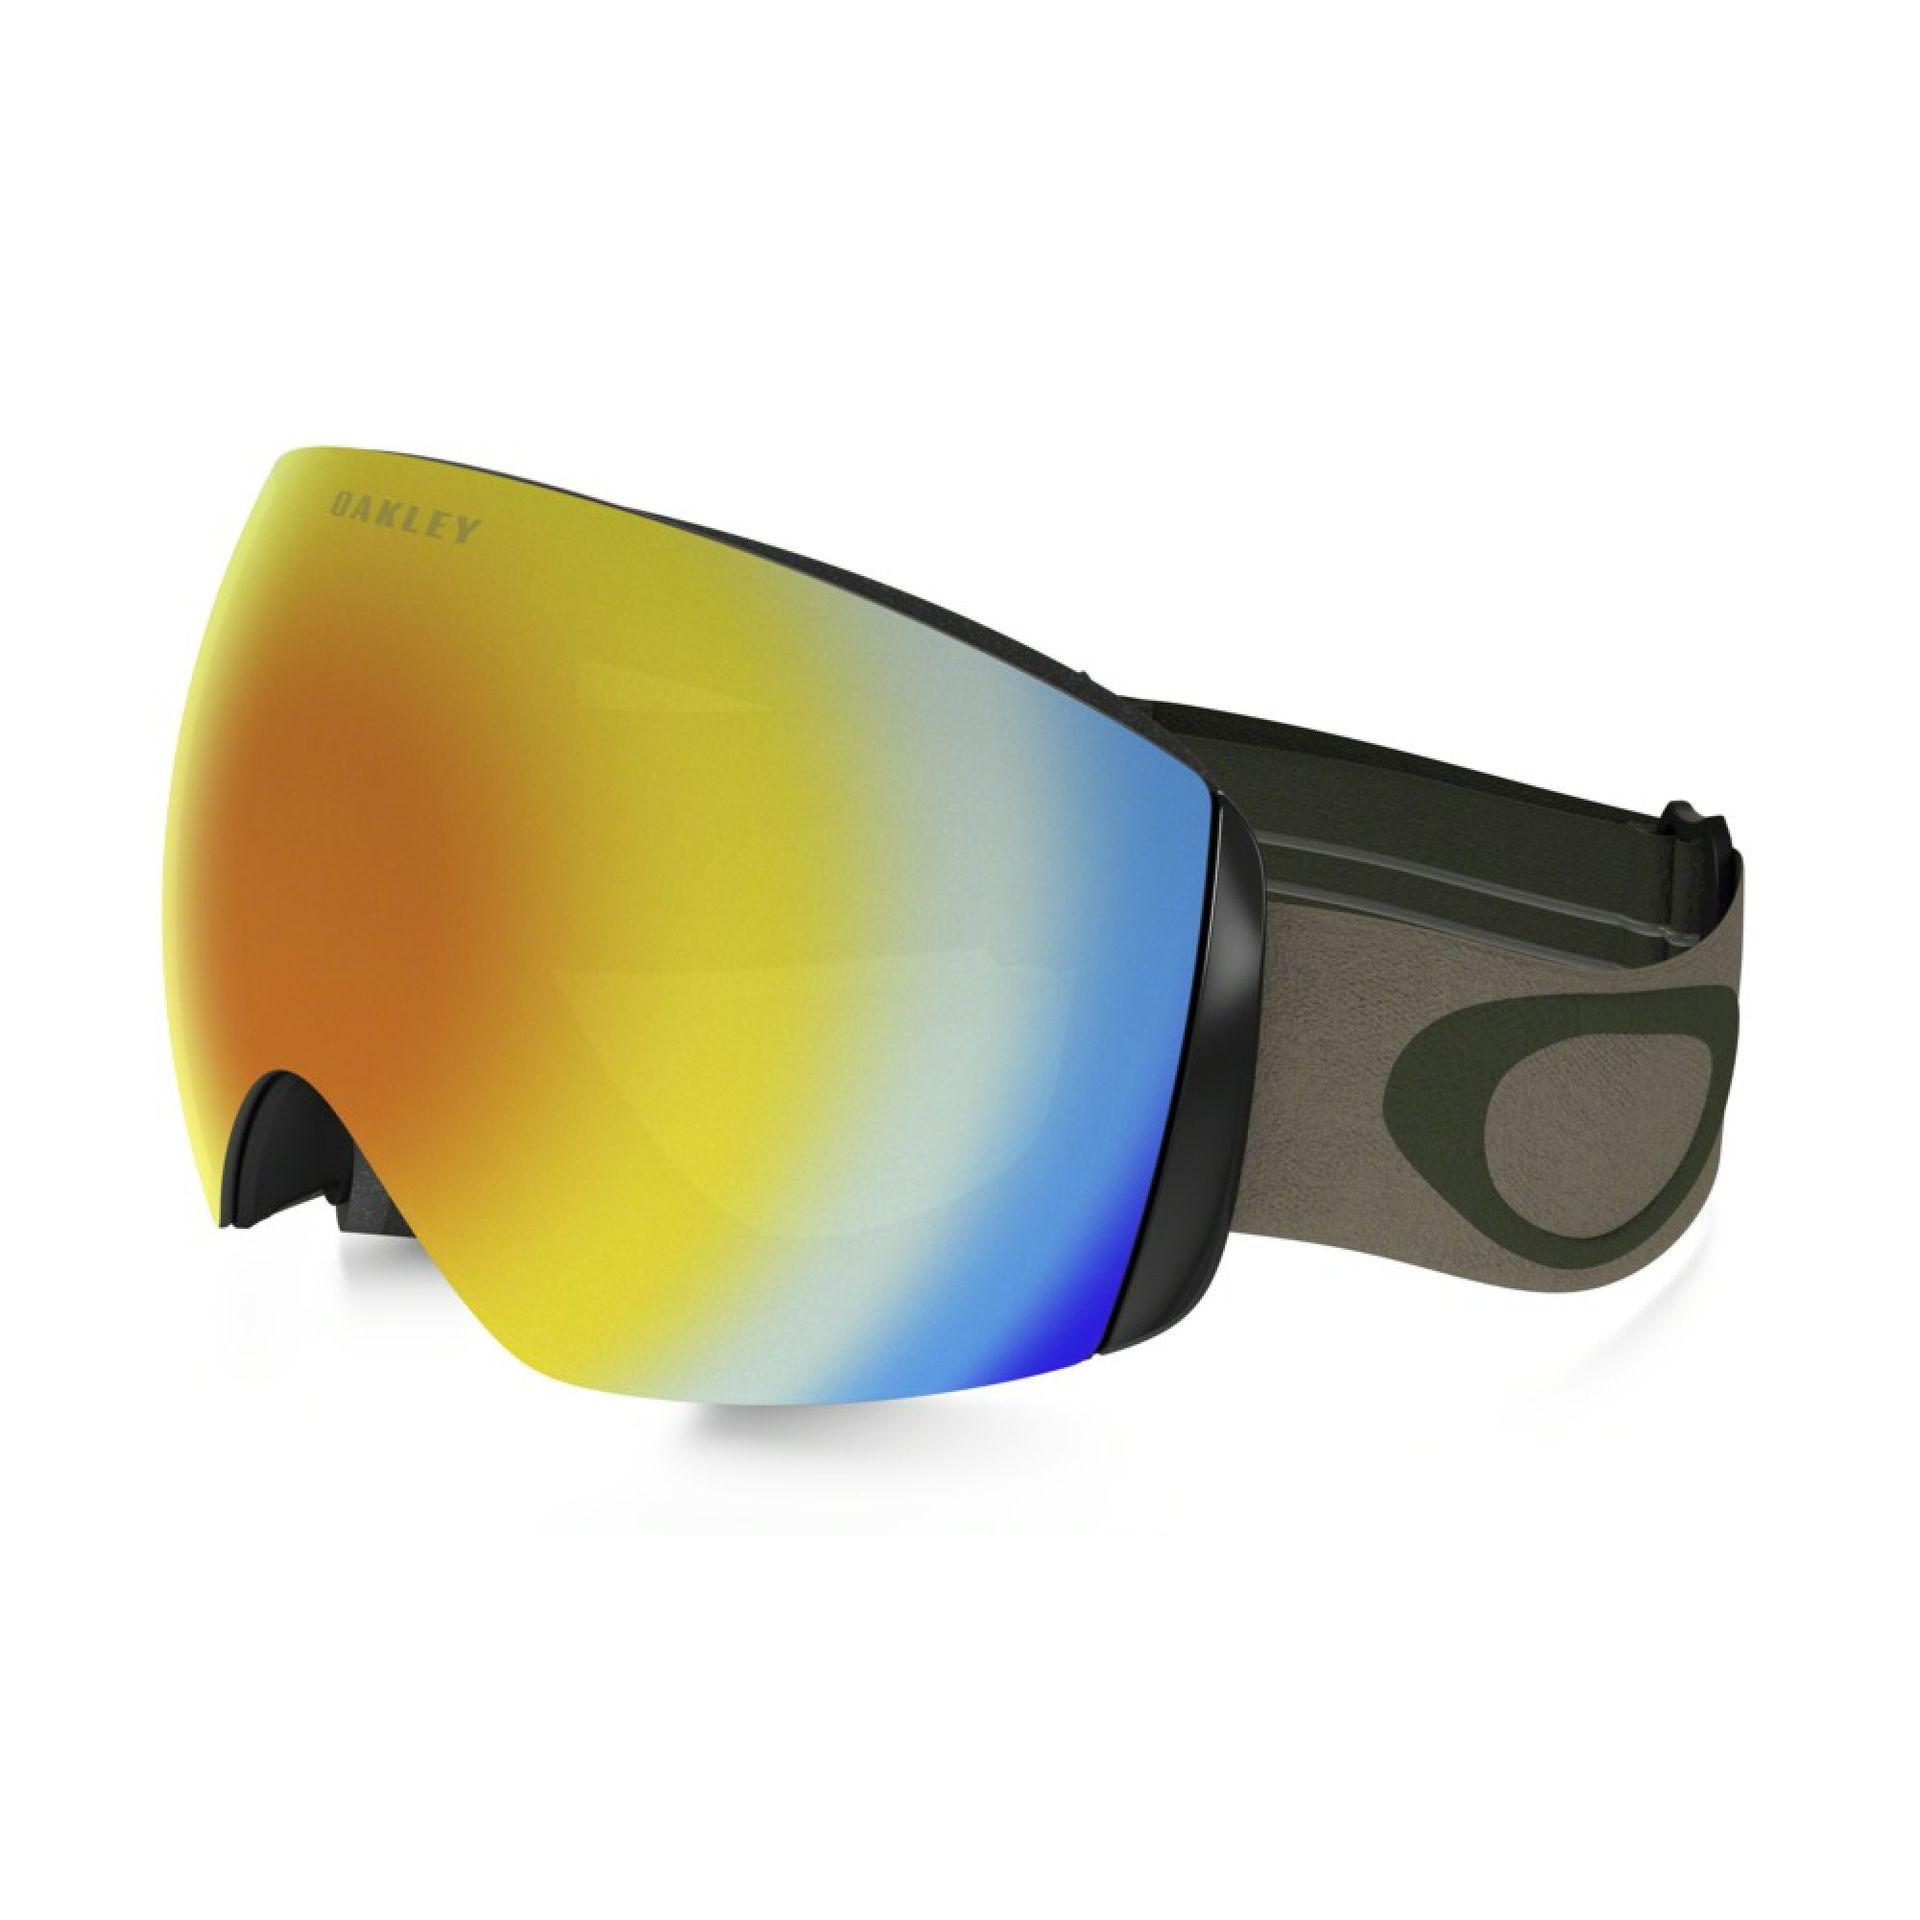 GOGLE OAKLEY FLIGHT DECK HERB KHAKI FIRE IRIDIUM